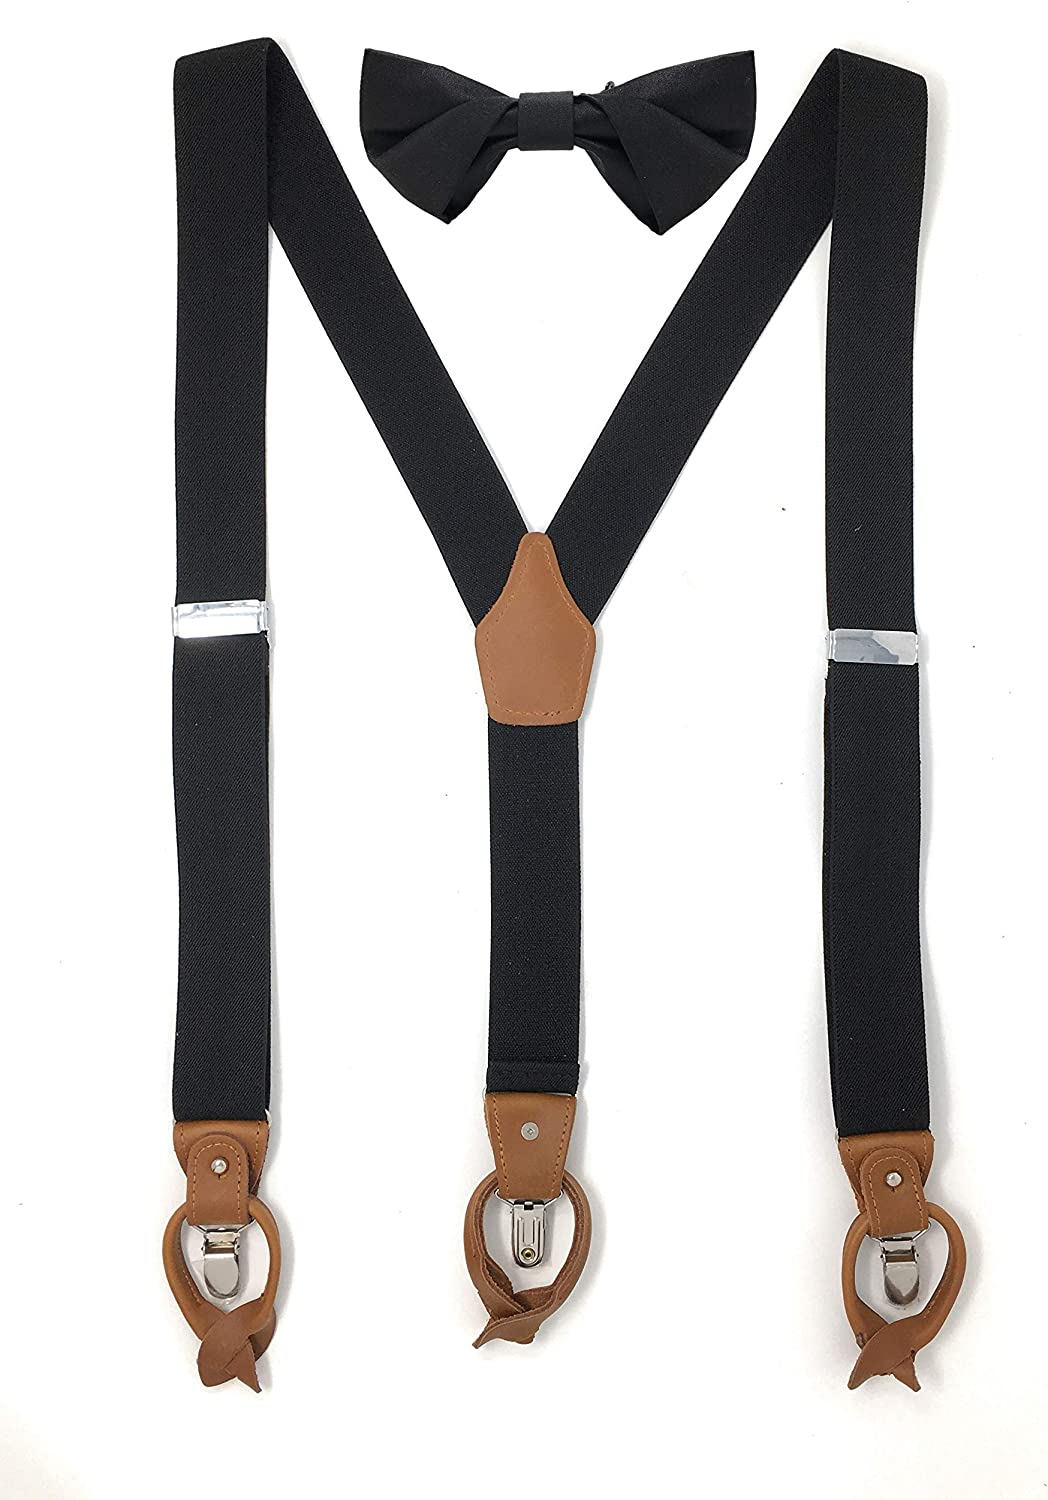 Lawevan Men's Y-shaped PU Leather Elastic Straps 3 Clips And Button Suspenders With Diamond Pointed Bowtie